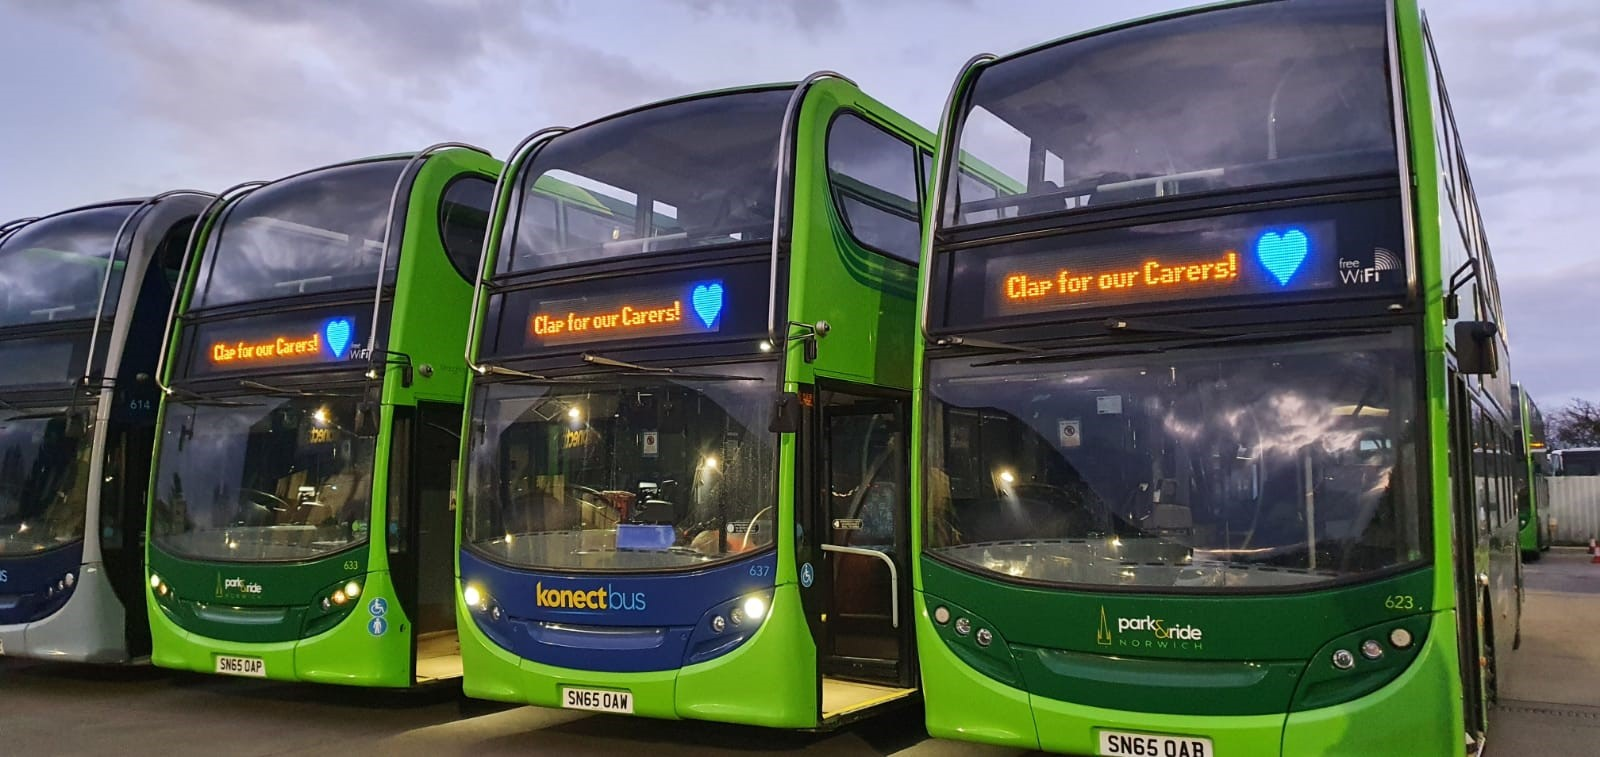 Photo of 3 Konectbus vehicles showing Clap for Carers on the front